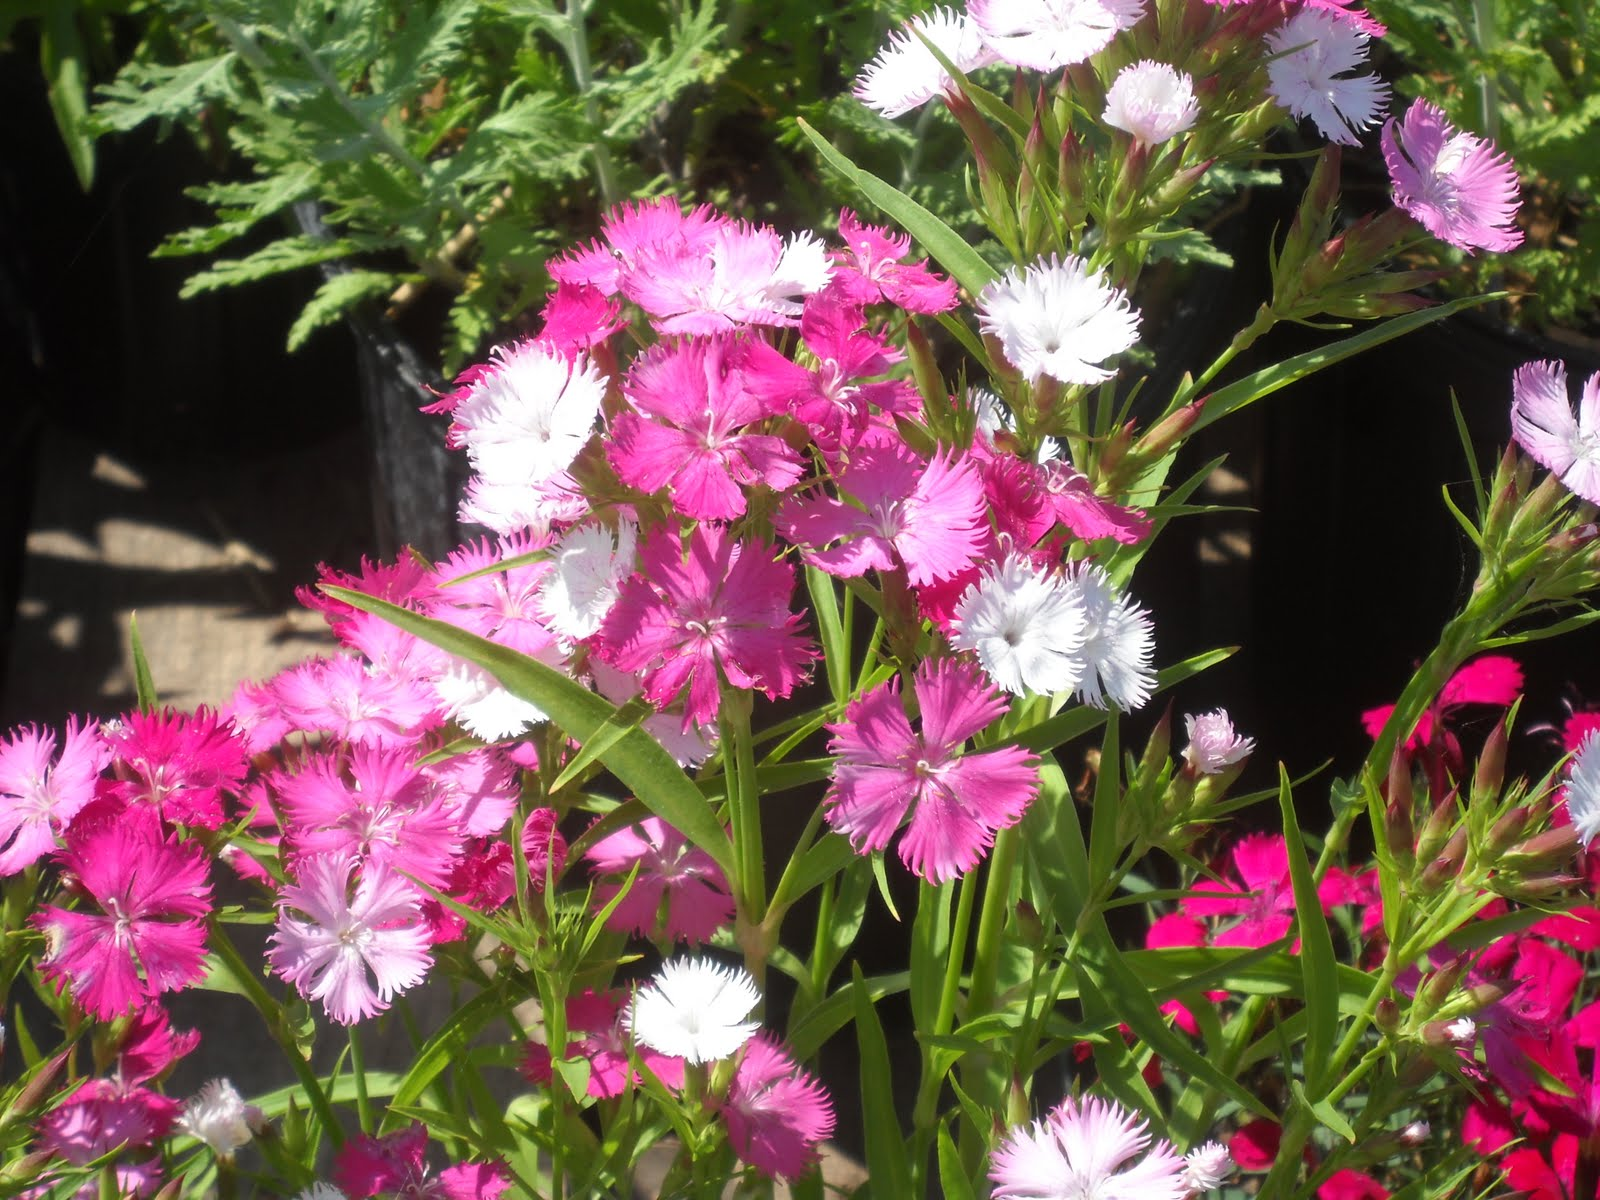 Earthworks St Peter Minnesota Dianthus Next In The Plant